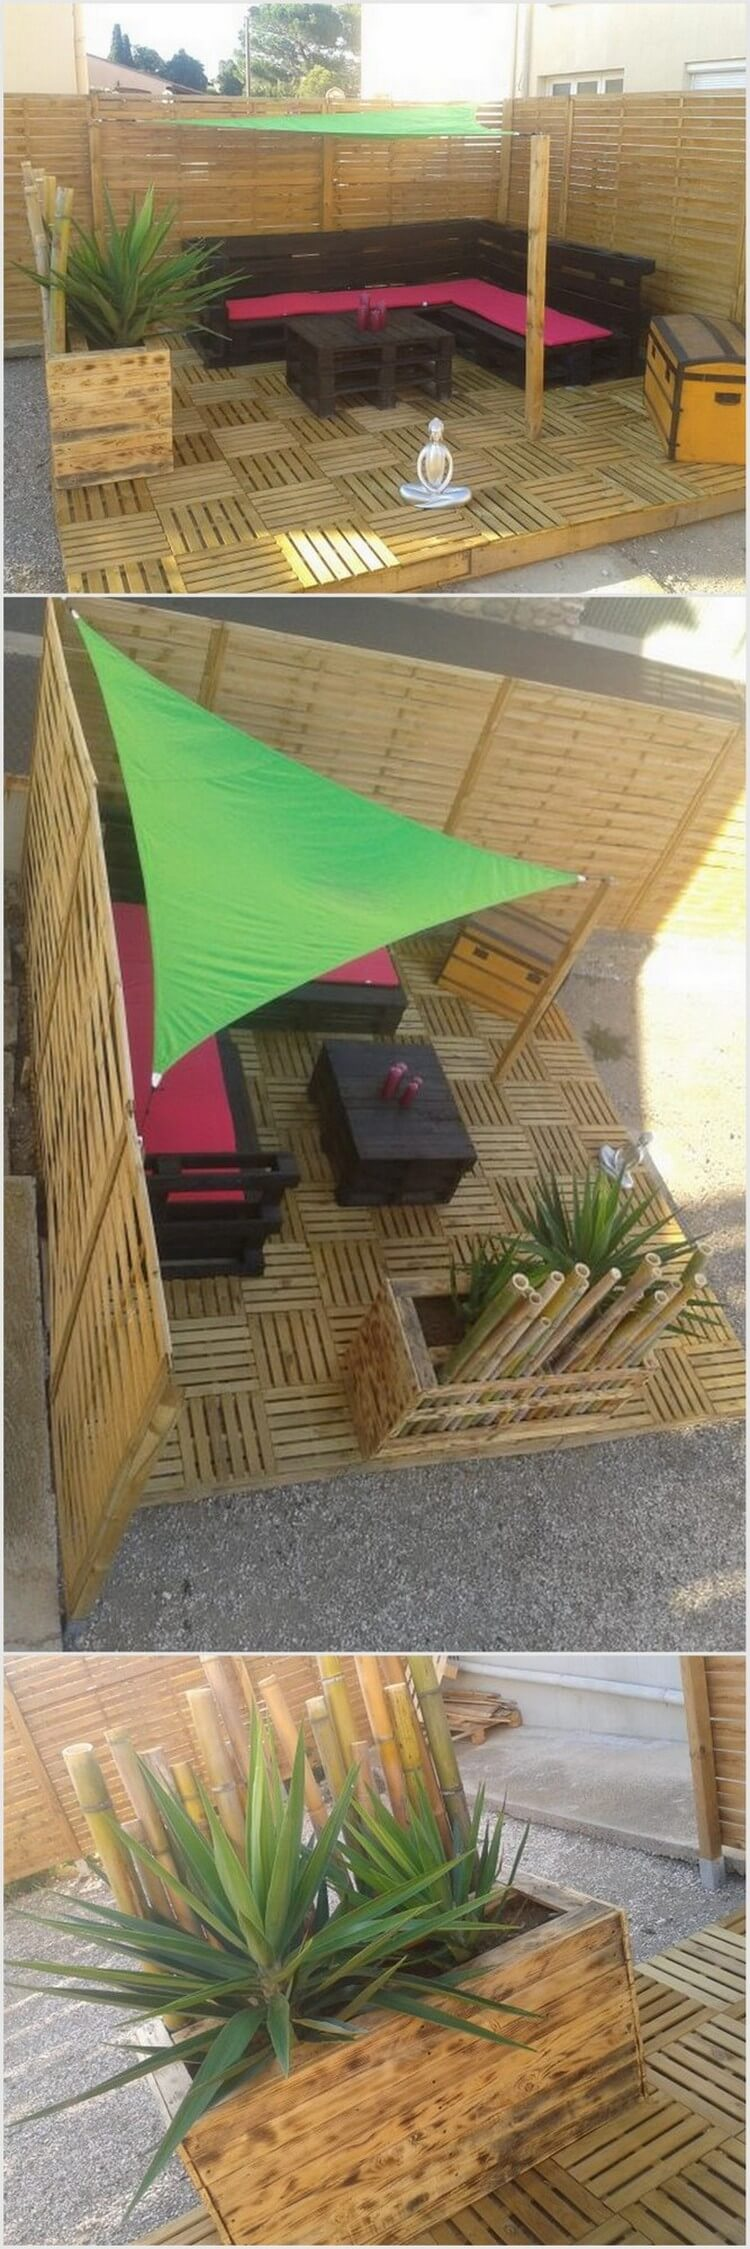 Wood Pallet Patio Funiture with Deck